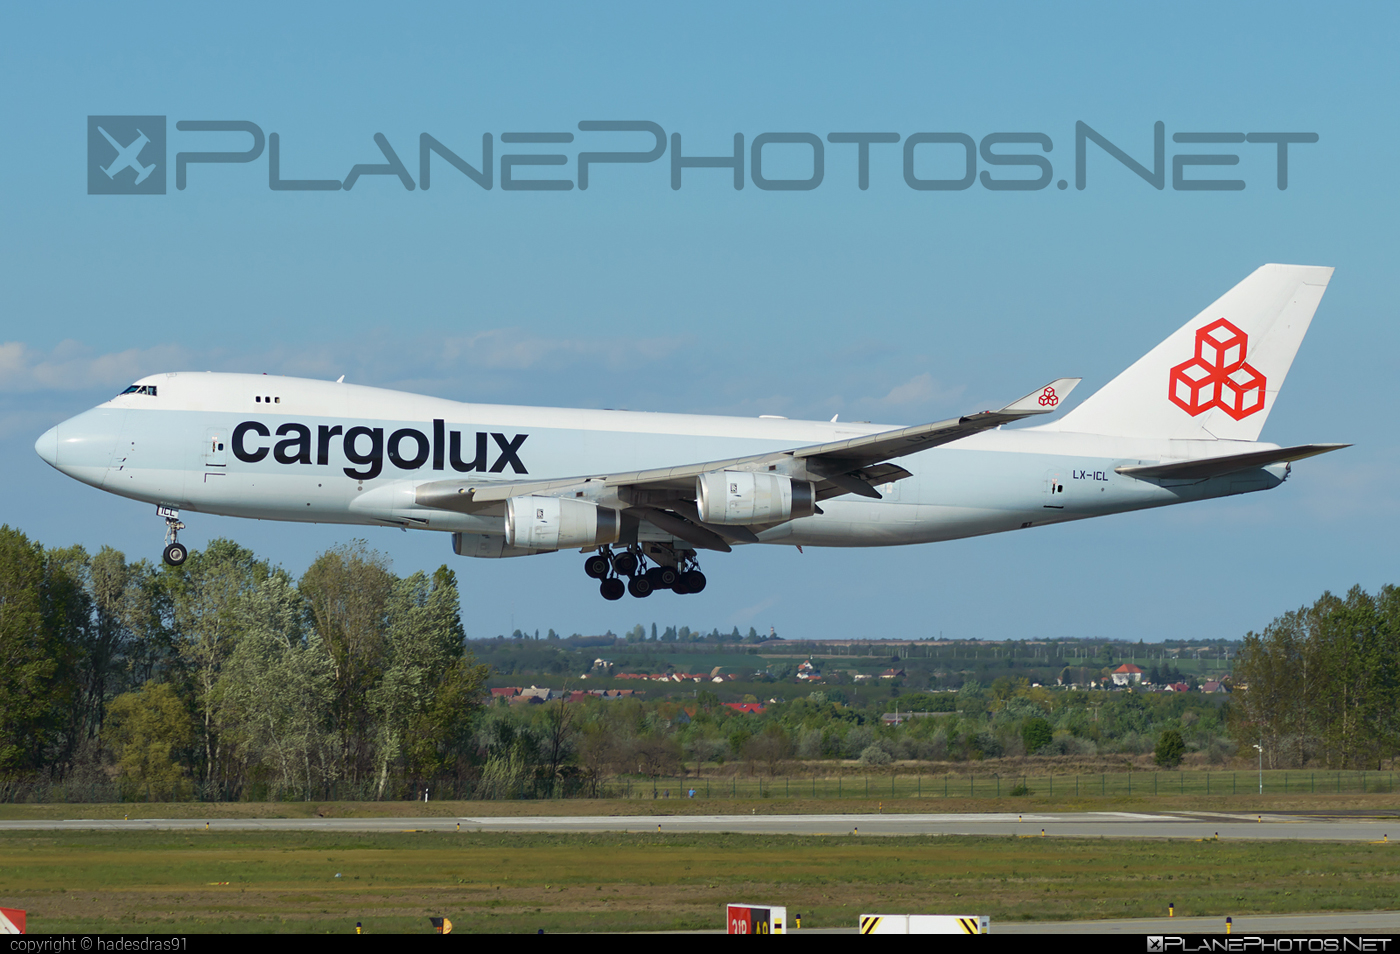 Boeing 747-400F - LX-ICL operated by Cargolux Airlines International #b747 #boeing #boeing747 #cargolux #jumbo